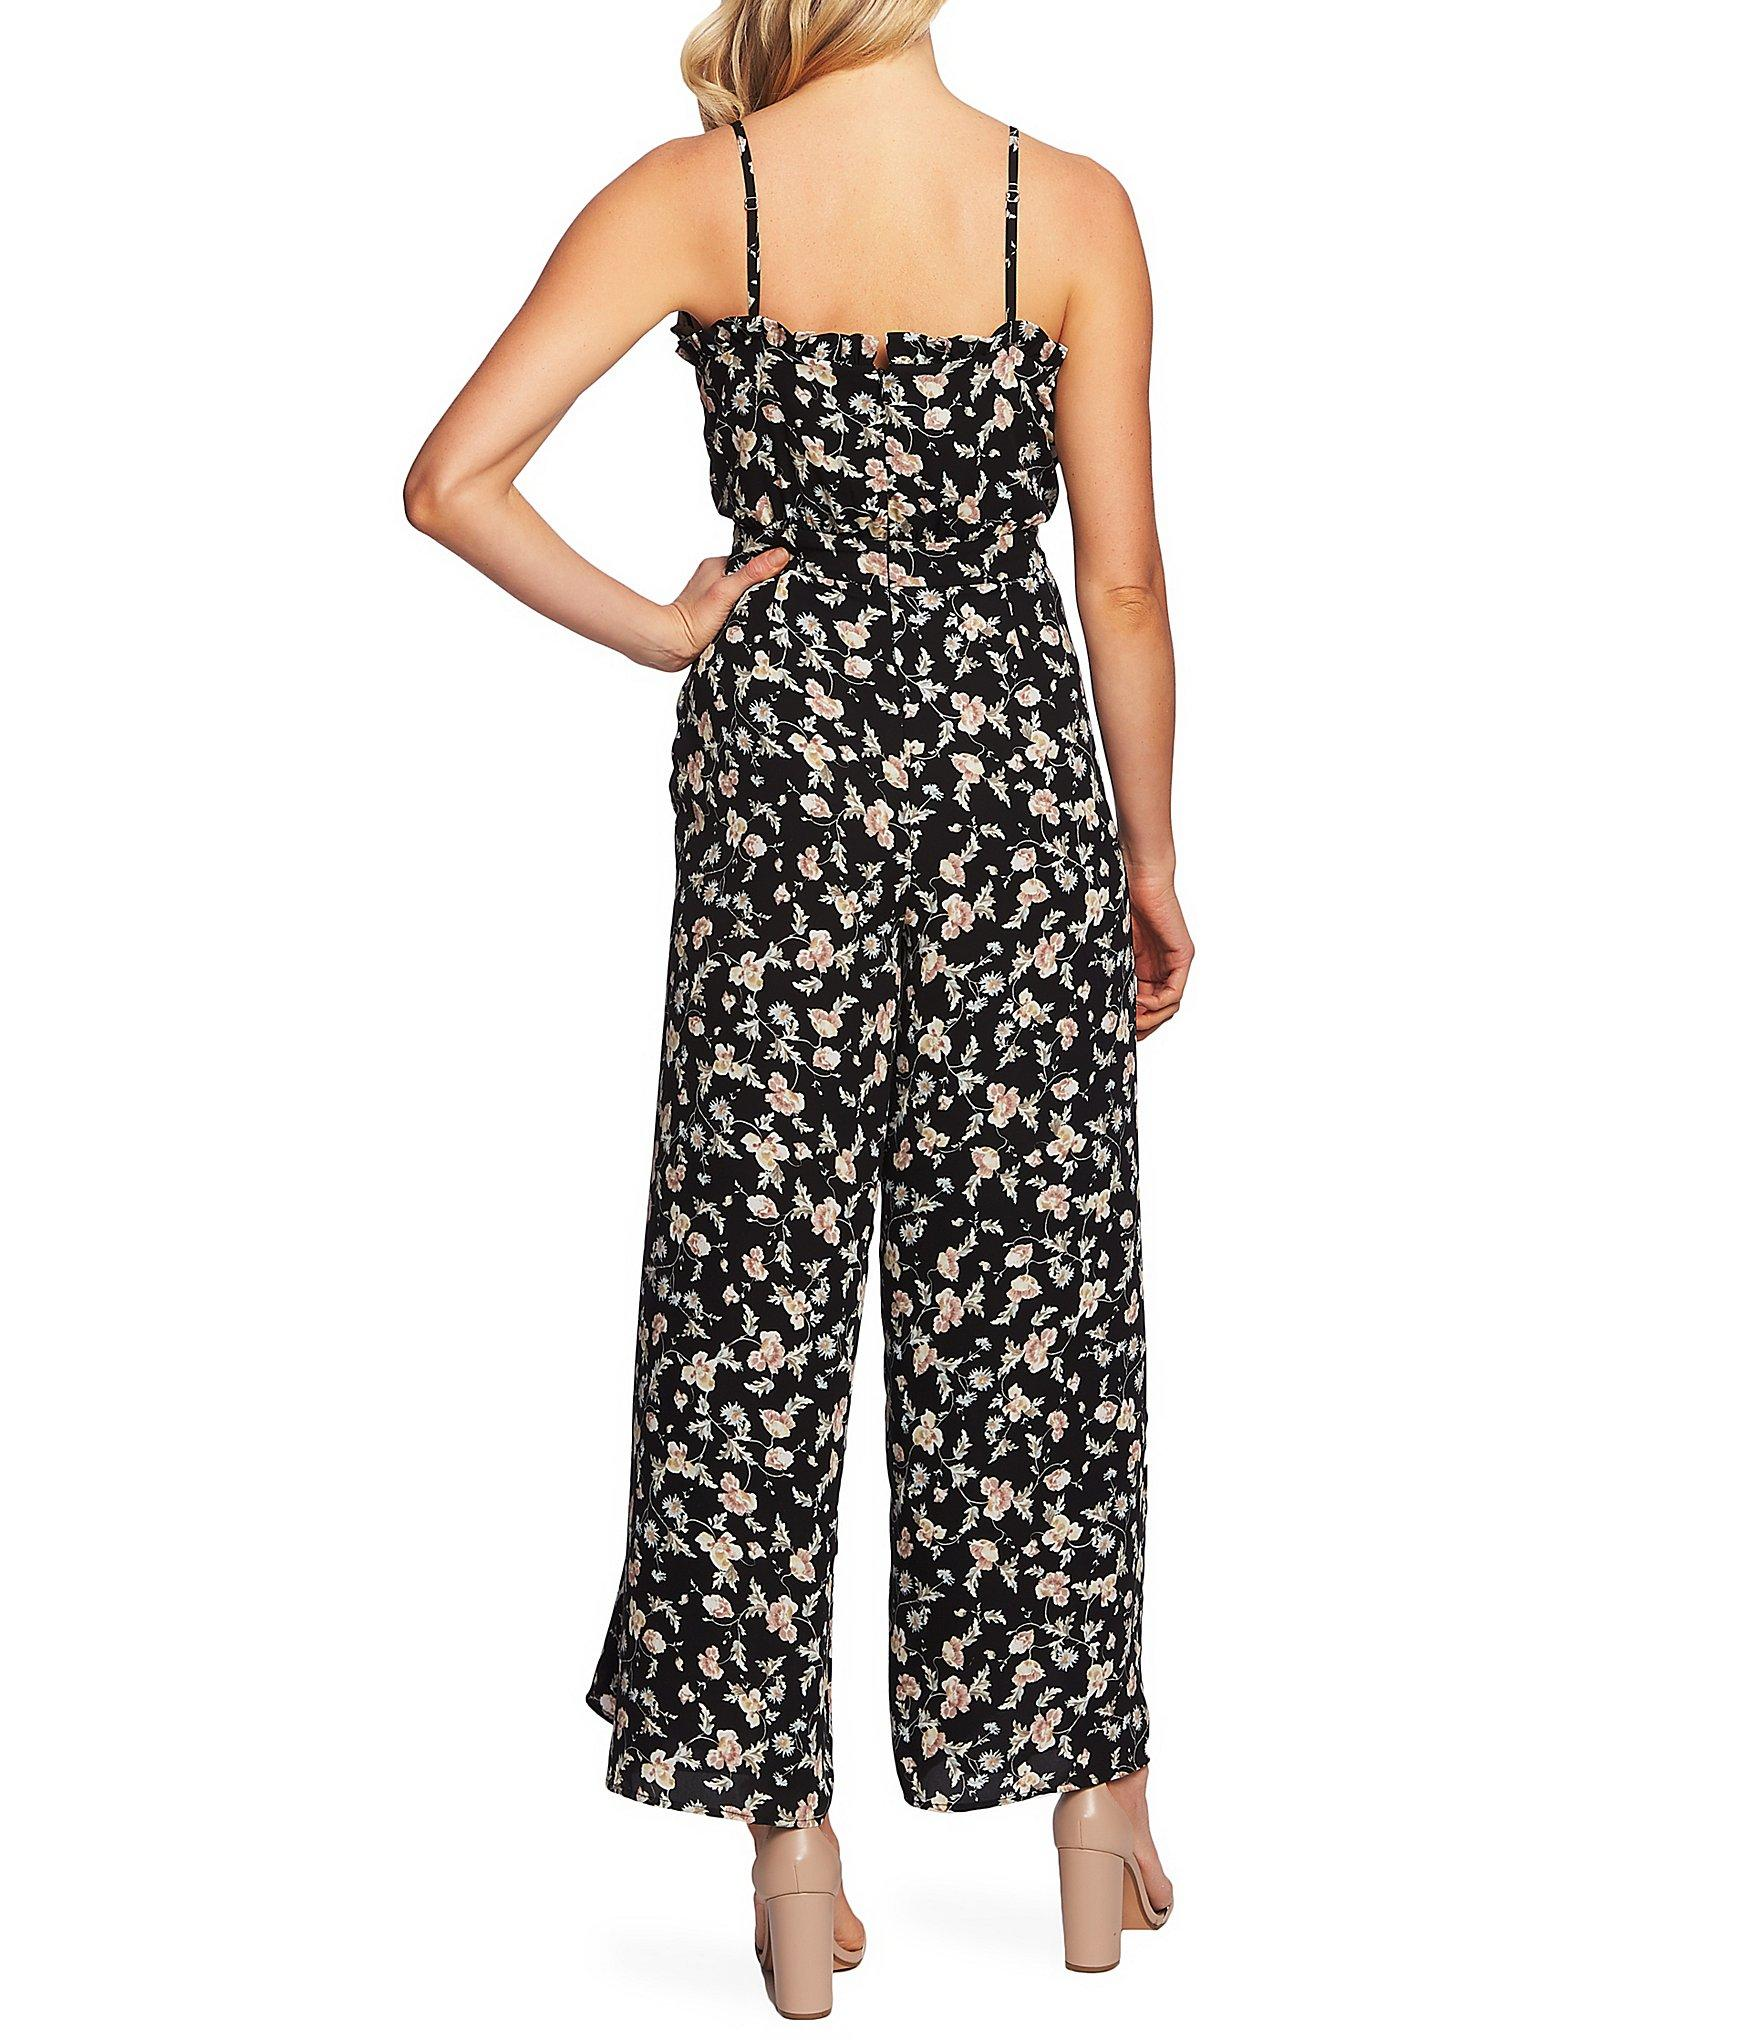 232c31aa851 Cece - Black Floral Print Sleeveless Ruffle Trim Square Neck Wide Leg  Jumpsuit - Lyst. View fullscreen